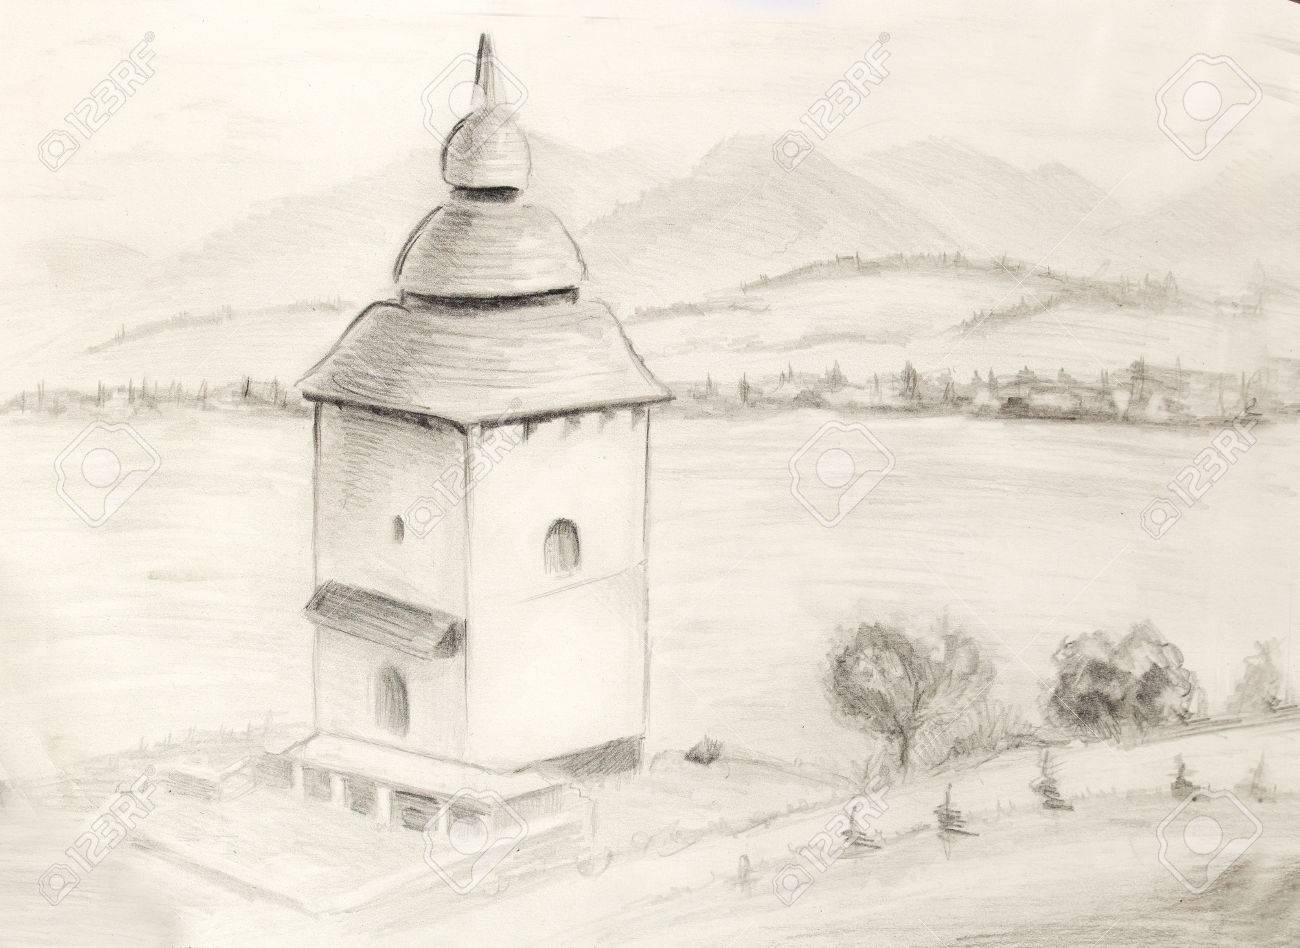 Sketch kaplnka in nature architectural pencil sketch stock photo 52511338